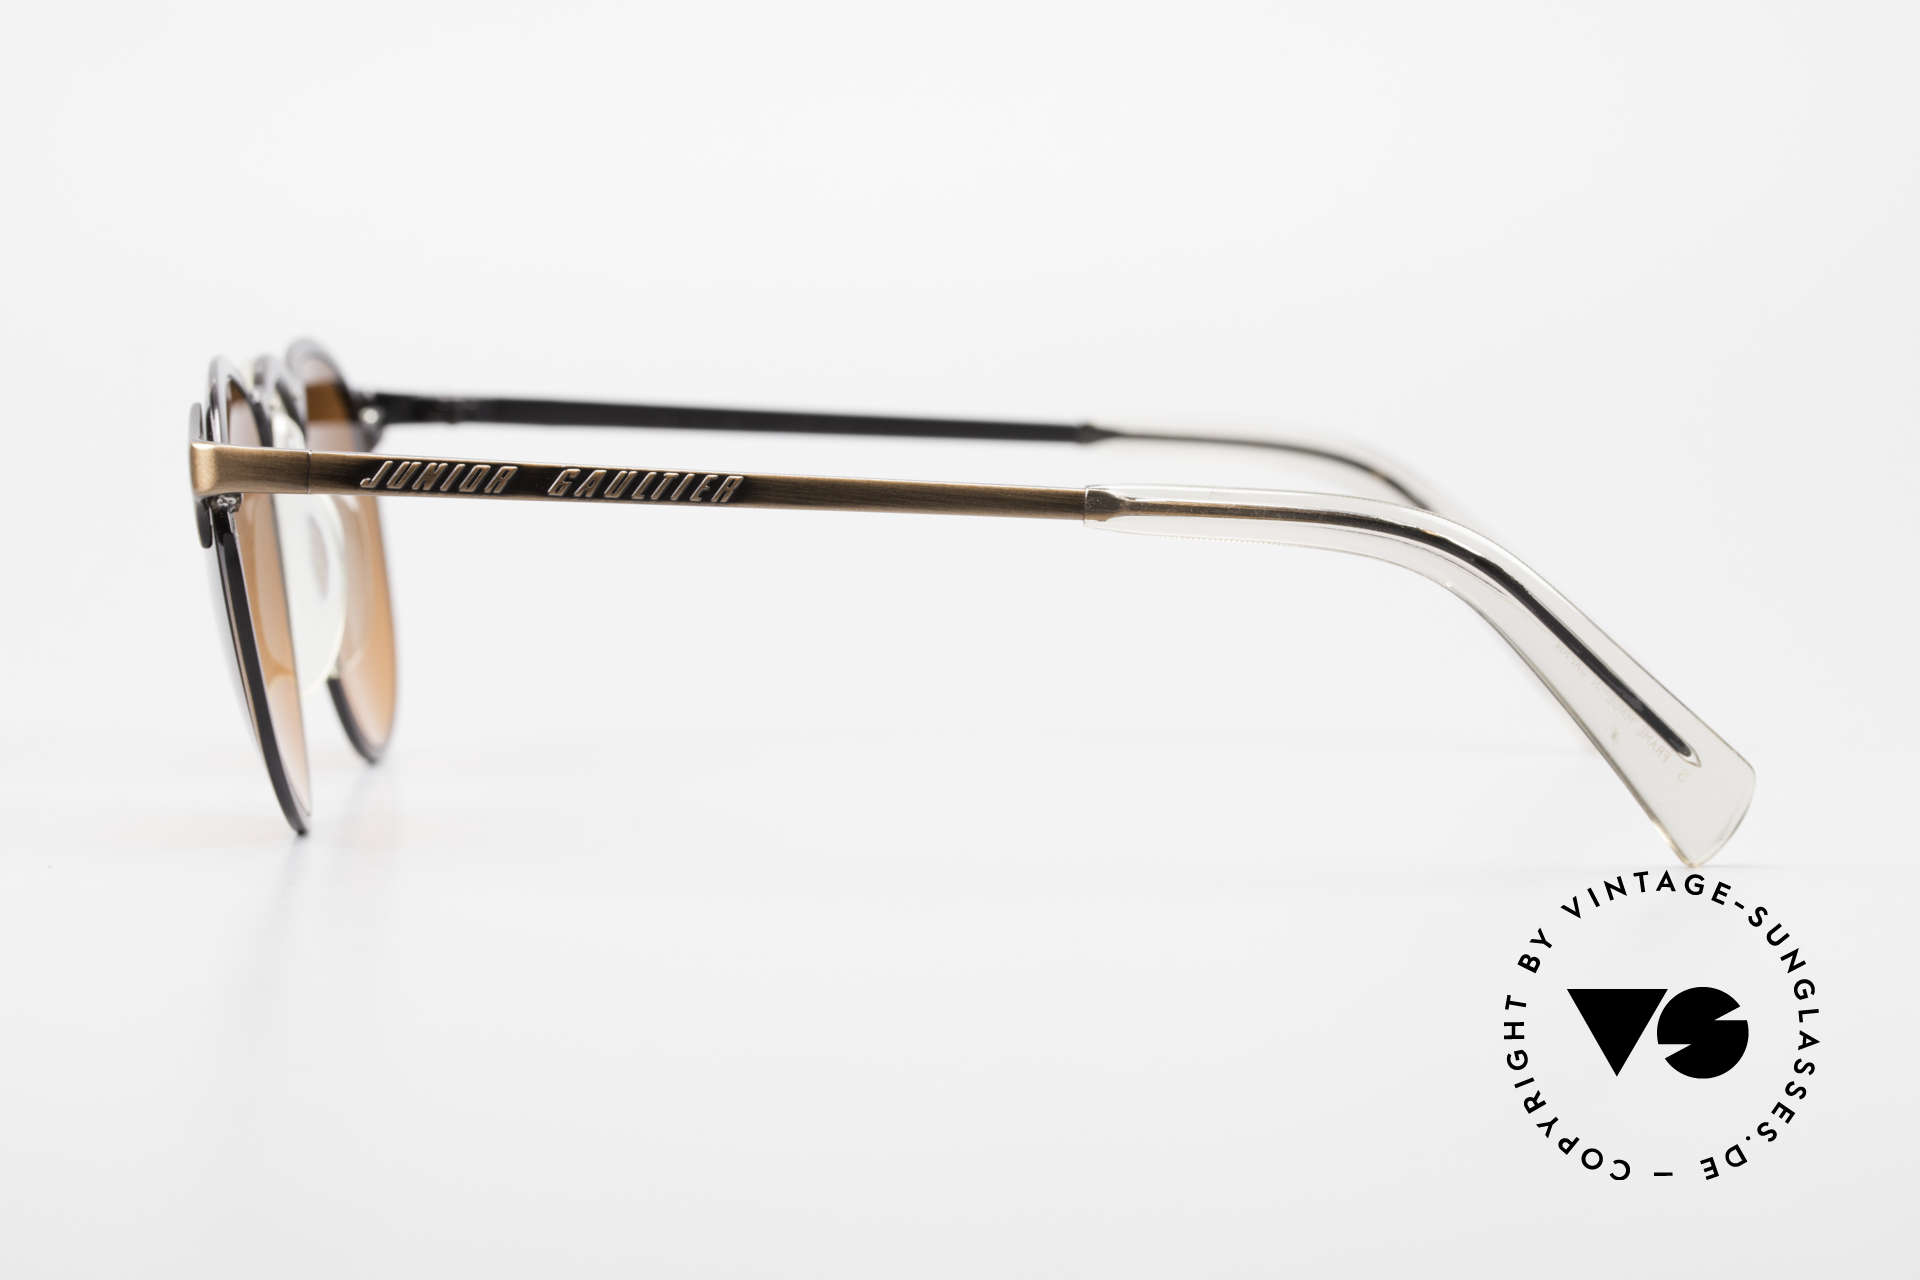 """Jean Paul Gaultier 57-0174 90's JPG Panto Sunglasses, """"antique bronze"""" frame with lenses in """"sunset red"""", Made for Men"""